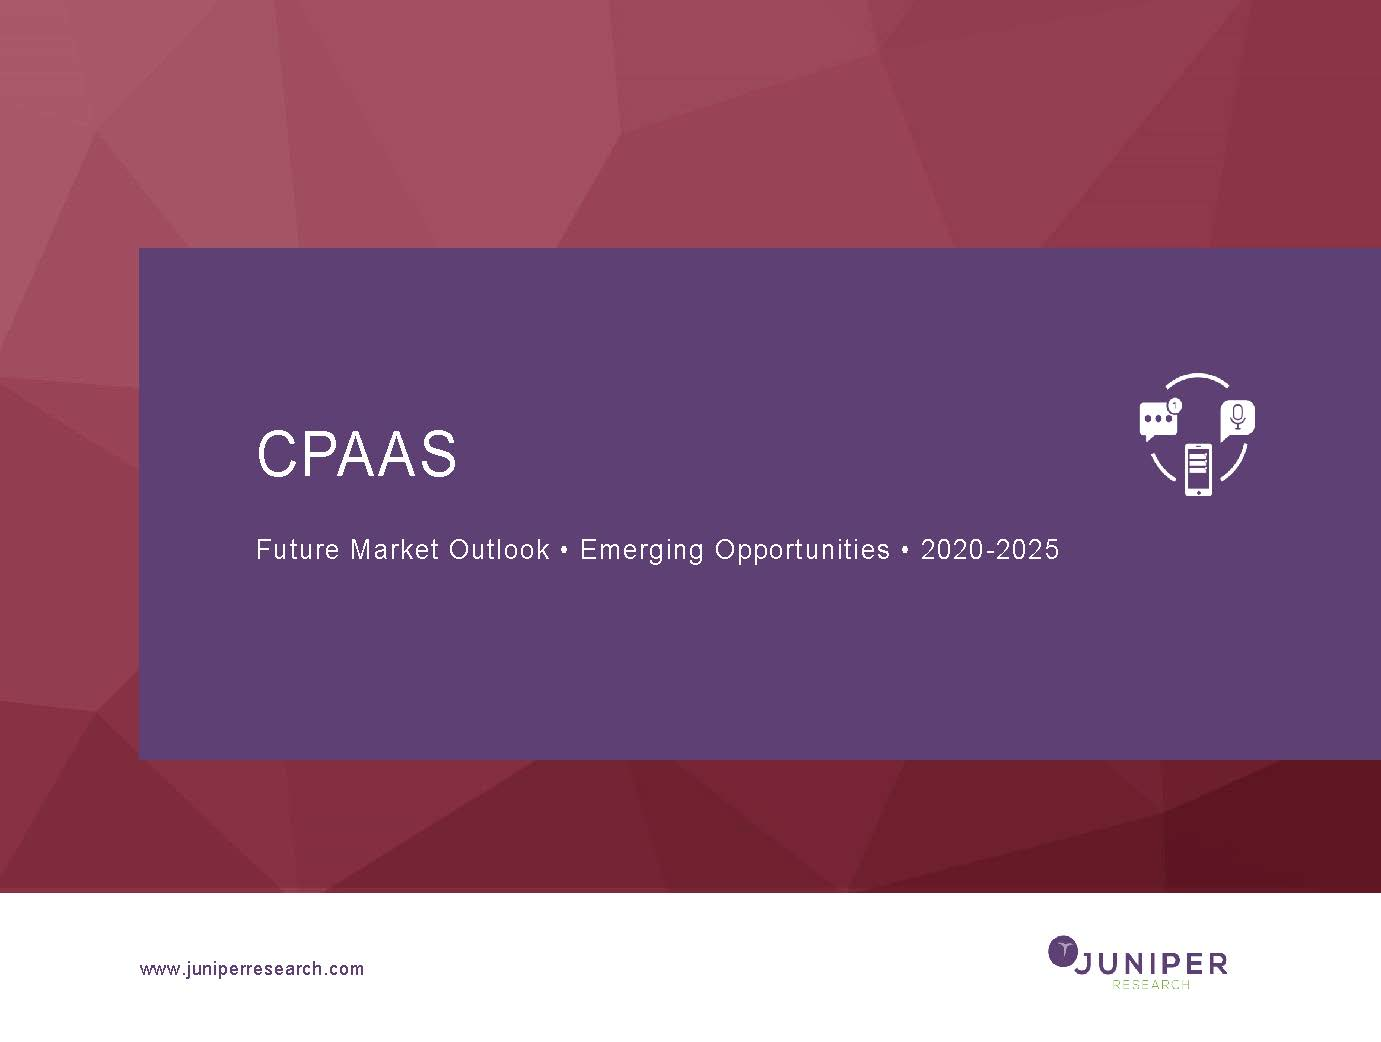 CPaaS: Future Market Outlook & Emerging Opportunities 2020-2025